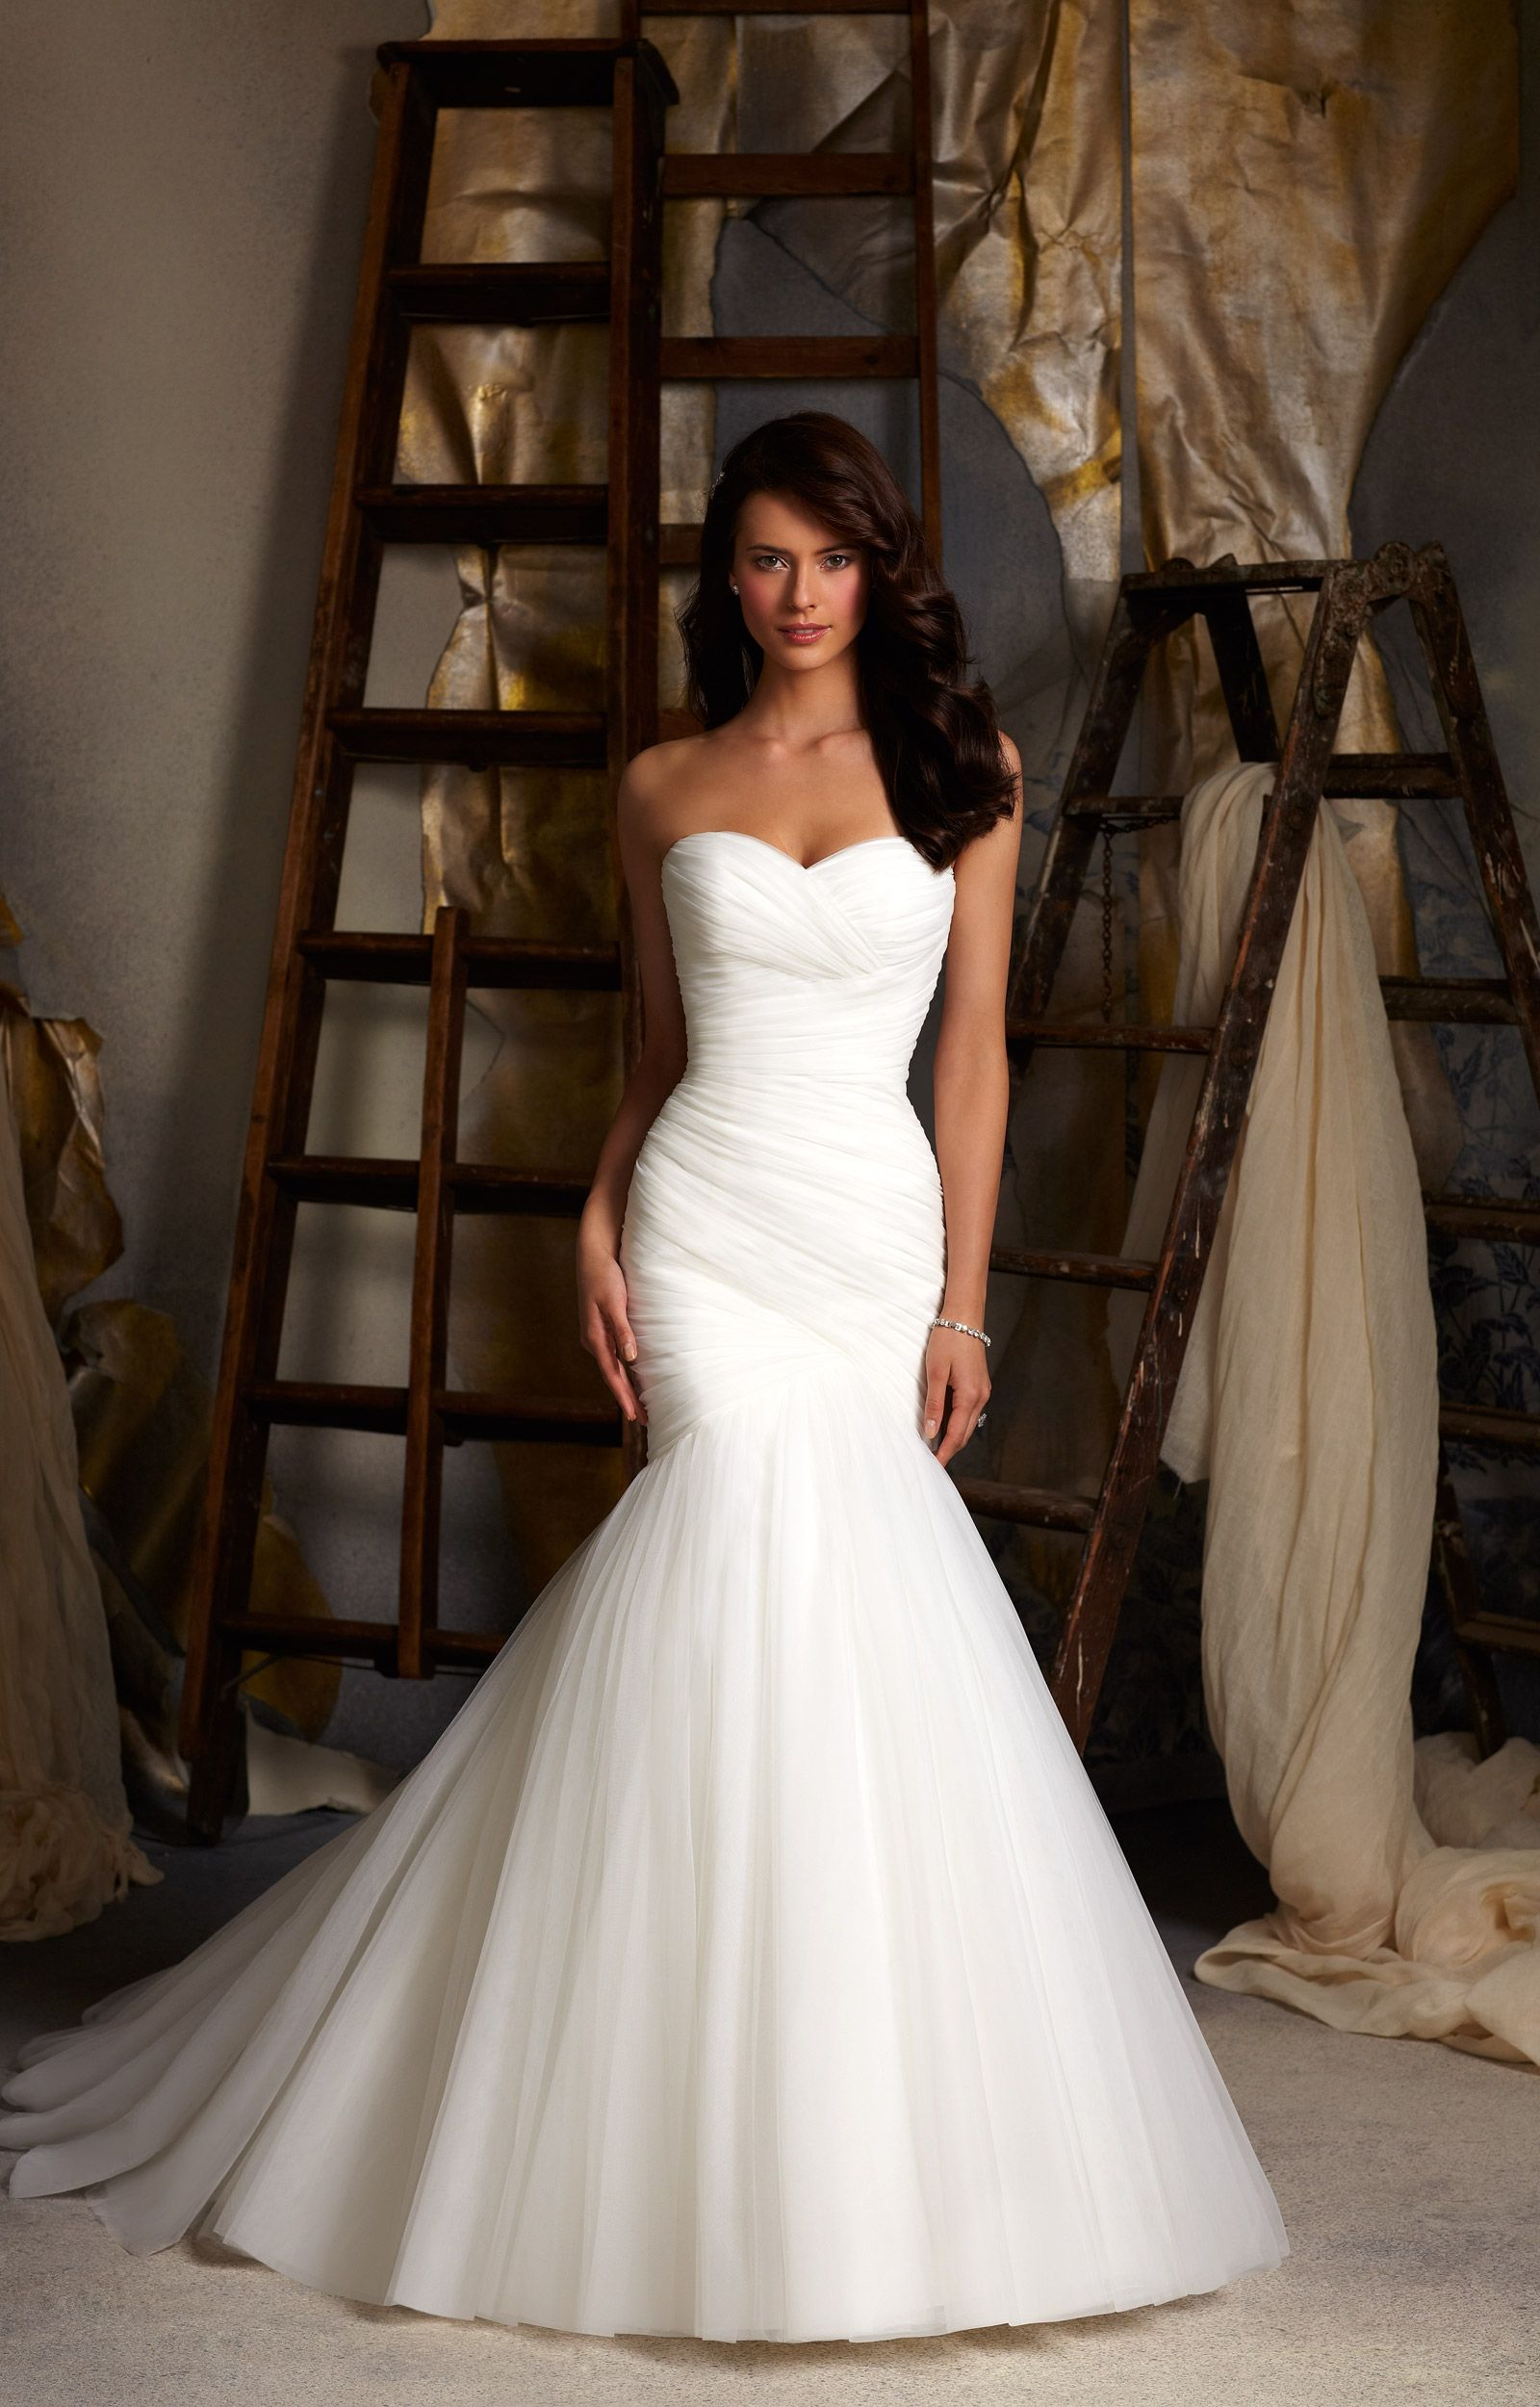 Impressive Corset Dresses Design Best Wedding Dress